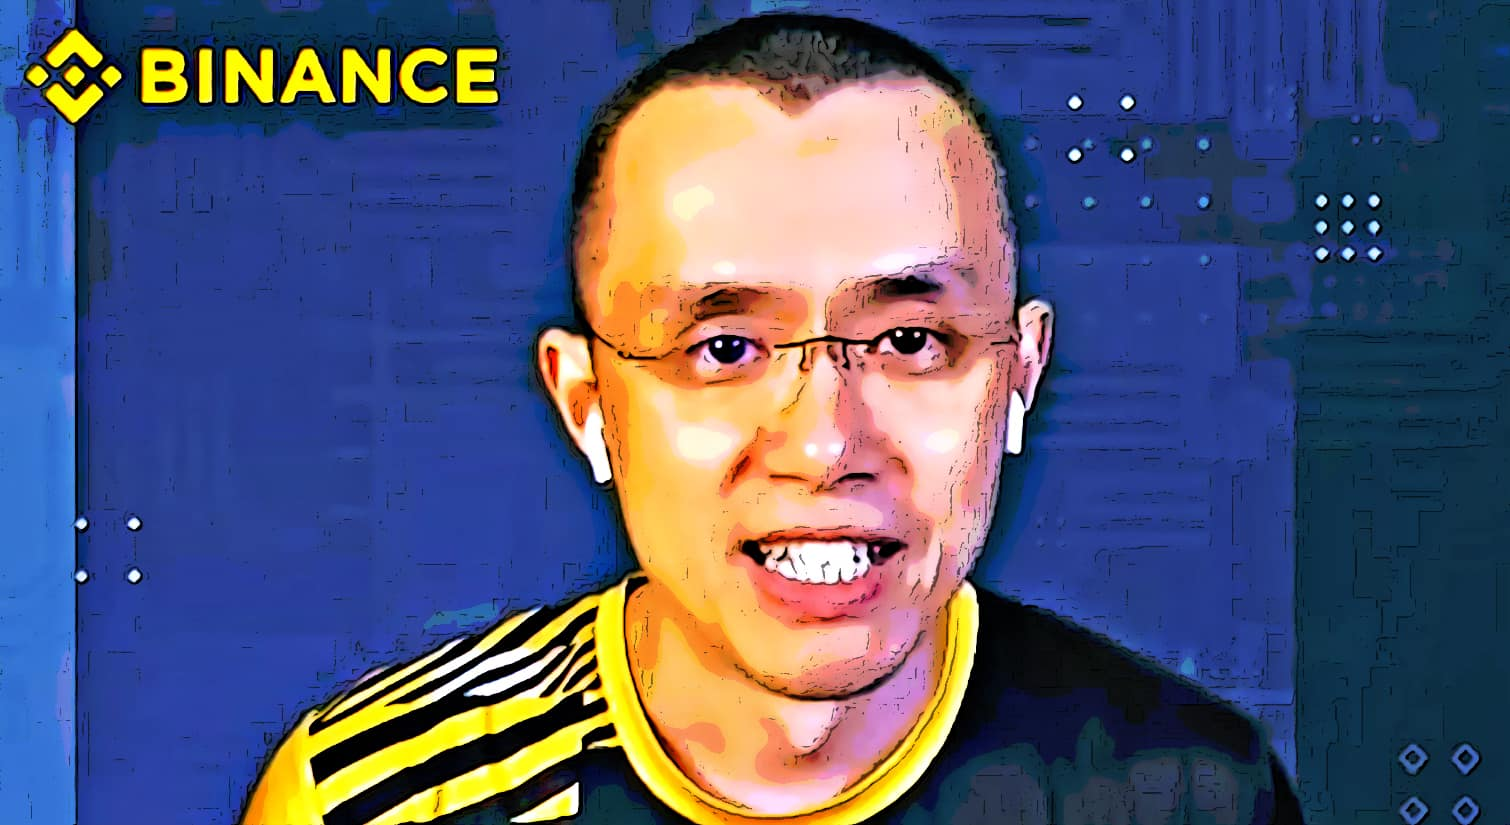 Binance's CZ on bitcoin prices: is crypto in a bubble or bull run?